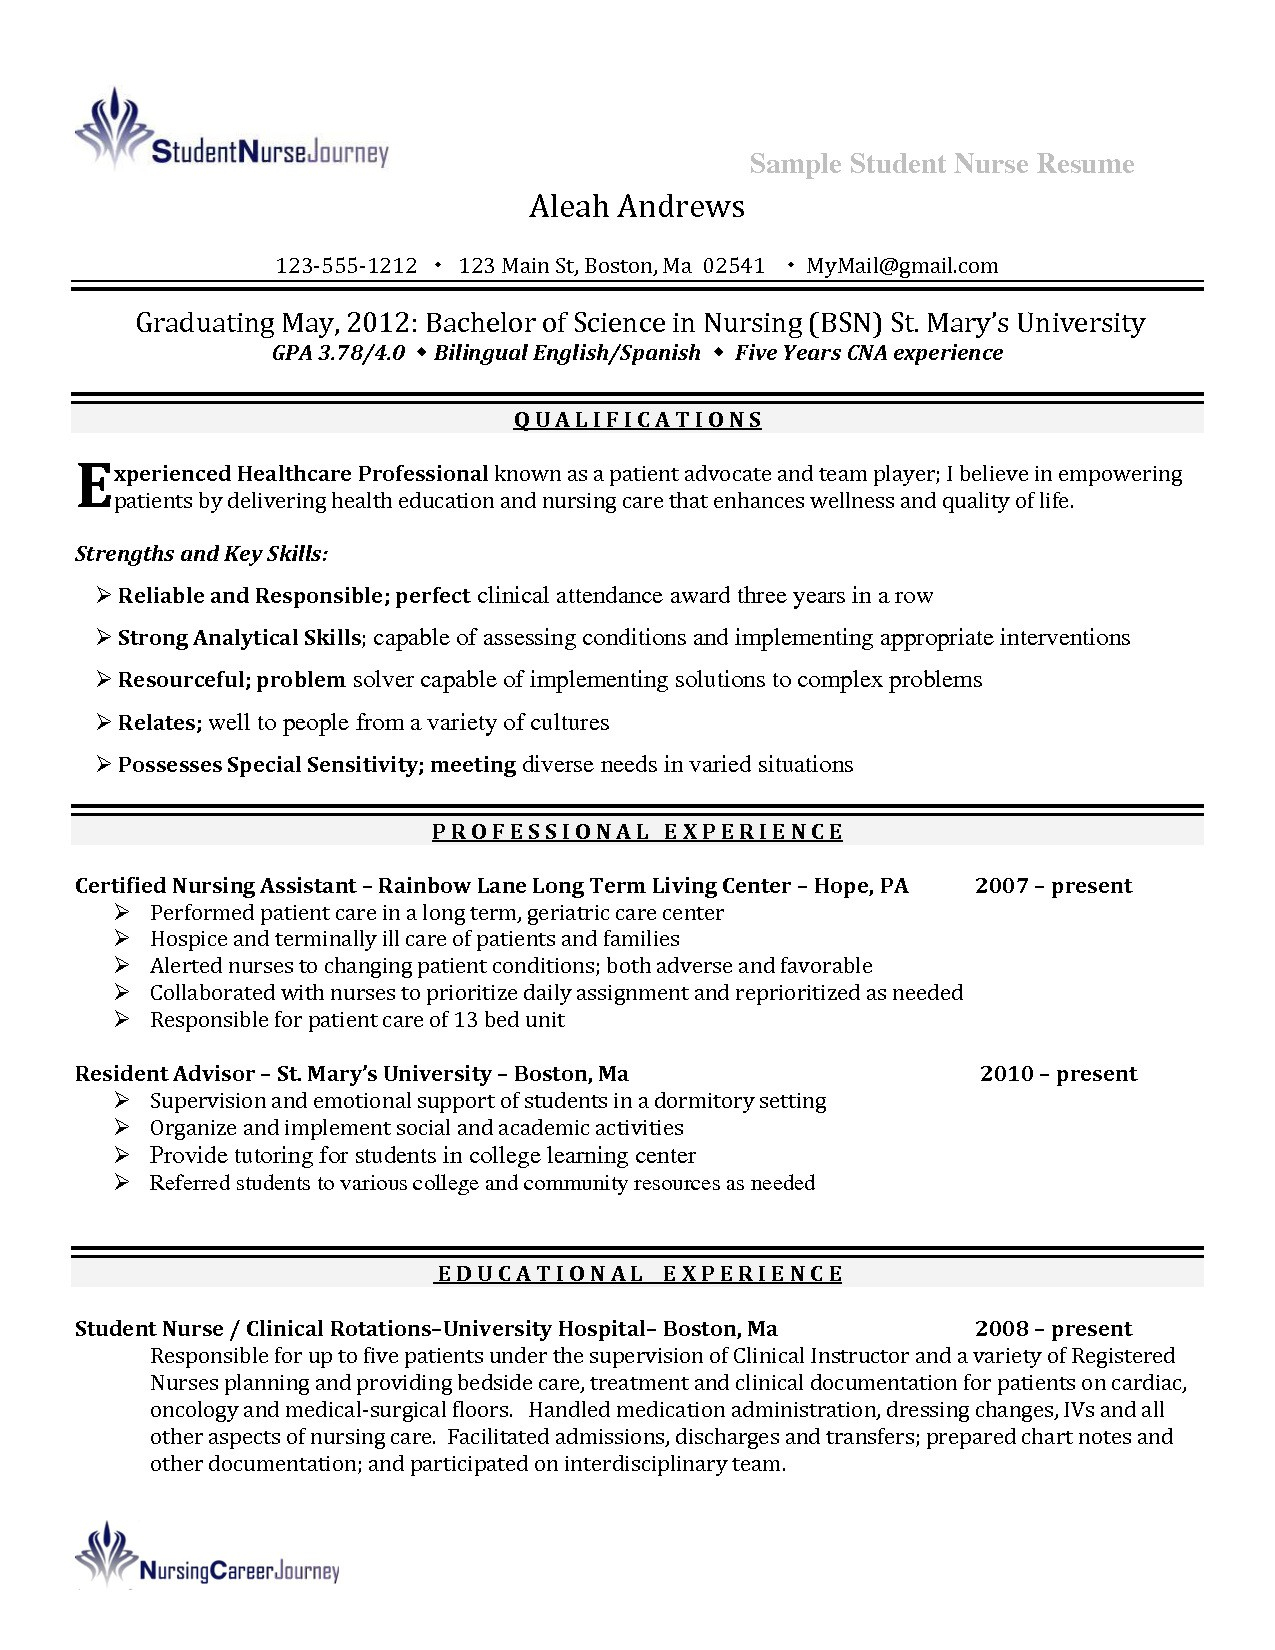 sample nursing student resume clinical experience Collection-Nursing Student Resume Clinical Experience 9-a